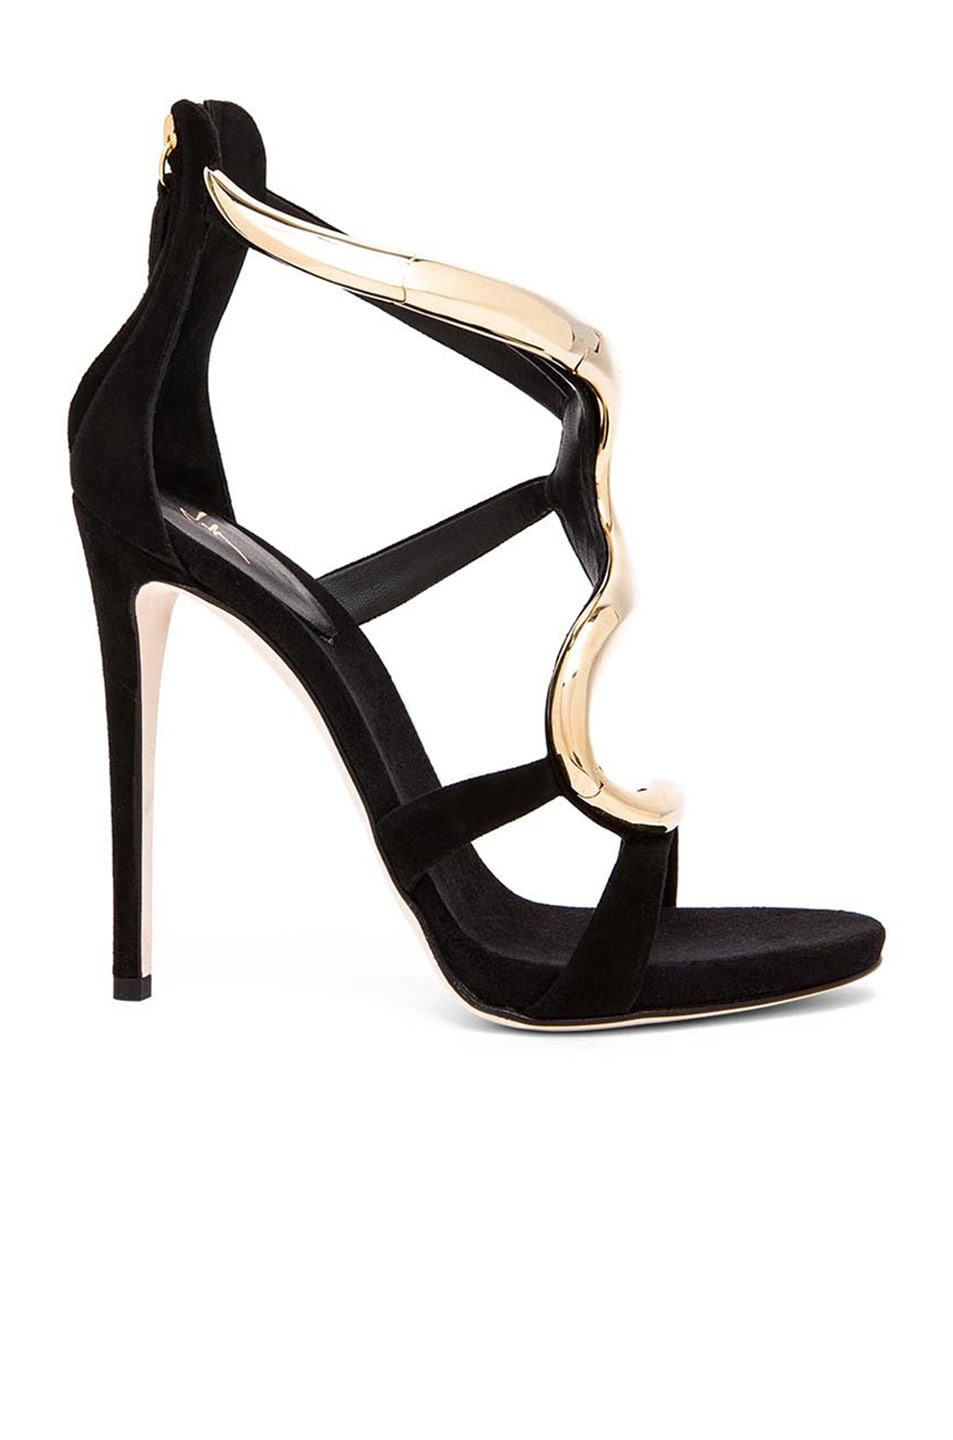 Image 1 of Giuseppe Zanotti Gold Snake Suede Heels in Black Suede